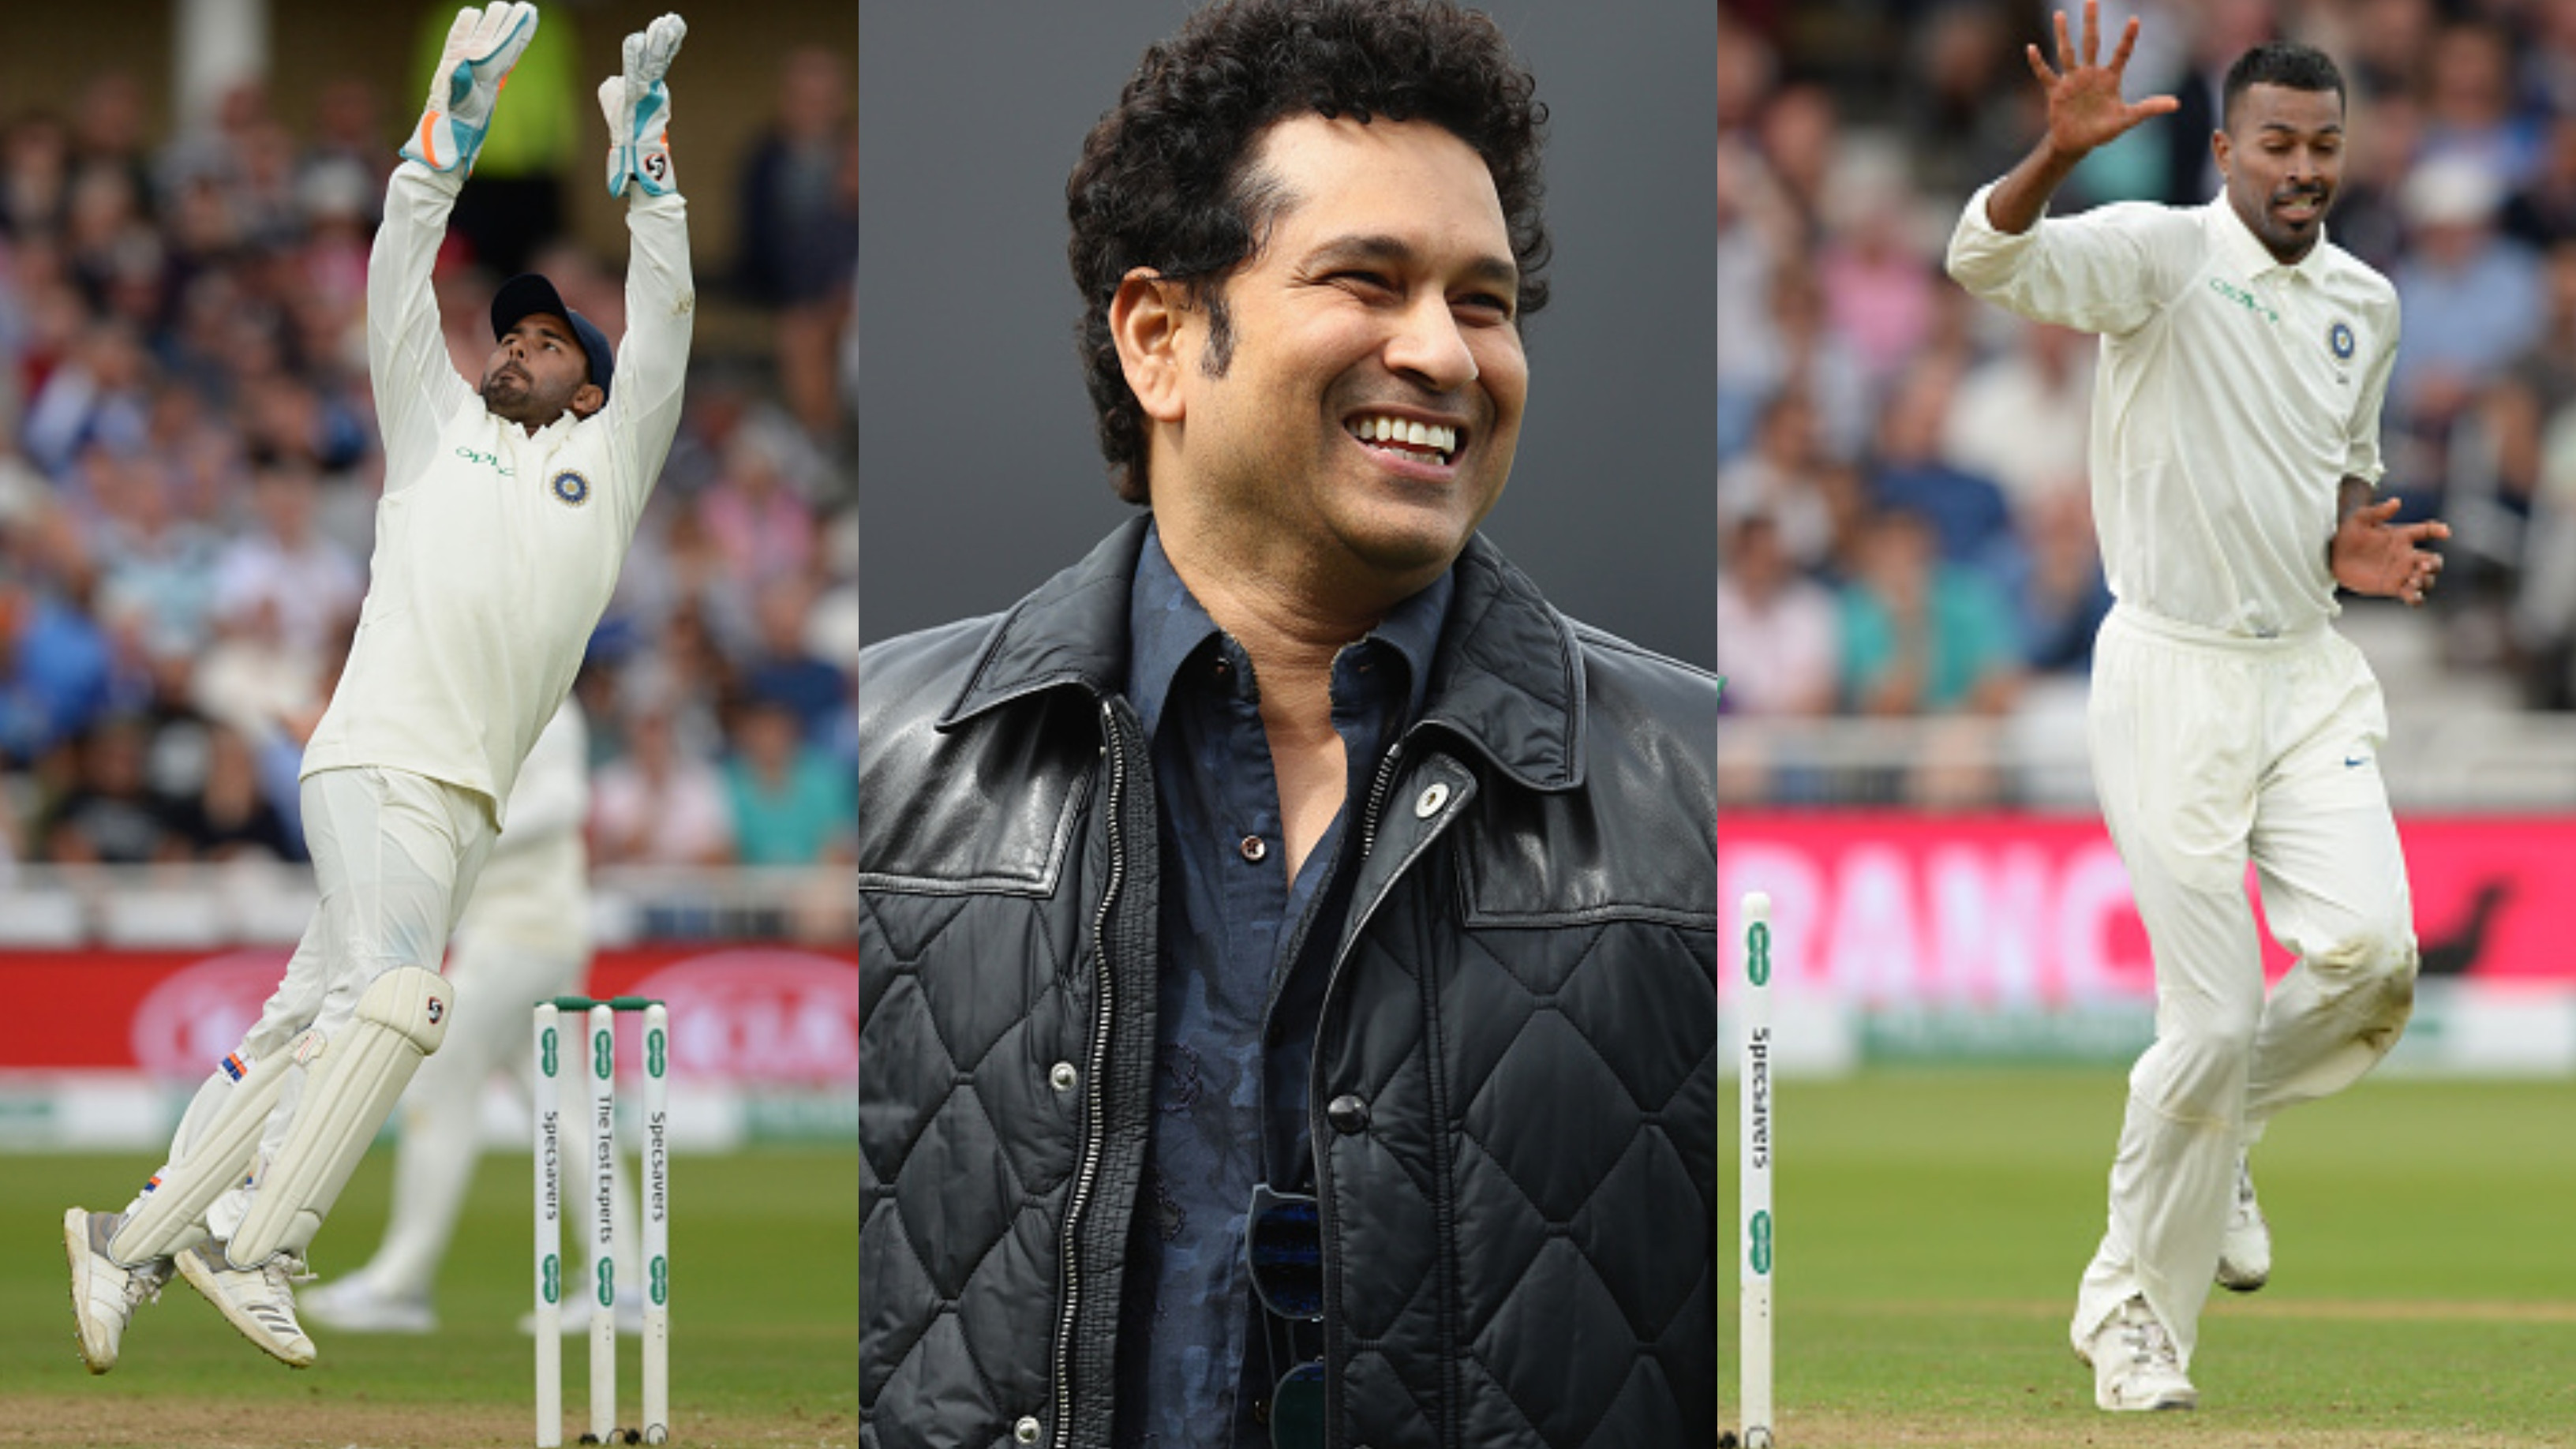 ENG v IND 2018: Sachin Tendulkar posts a special tweet for Pant and Pandya after their excellent show in Trent Bridge